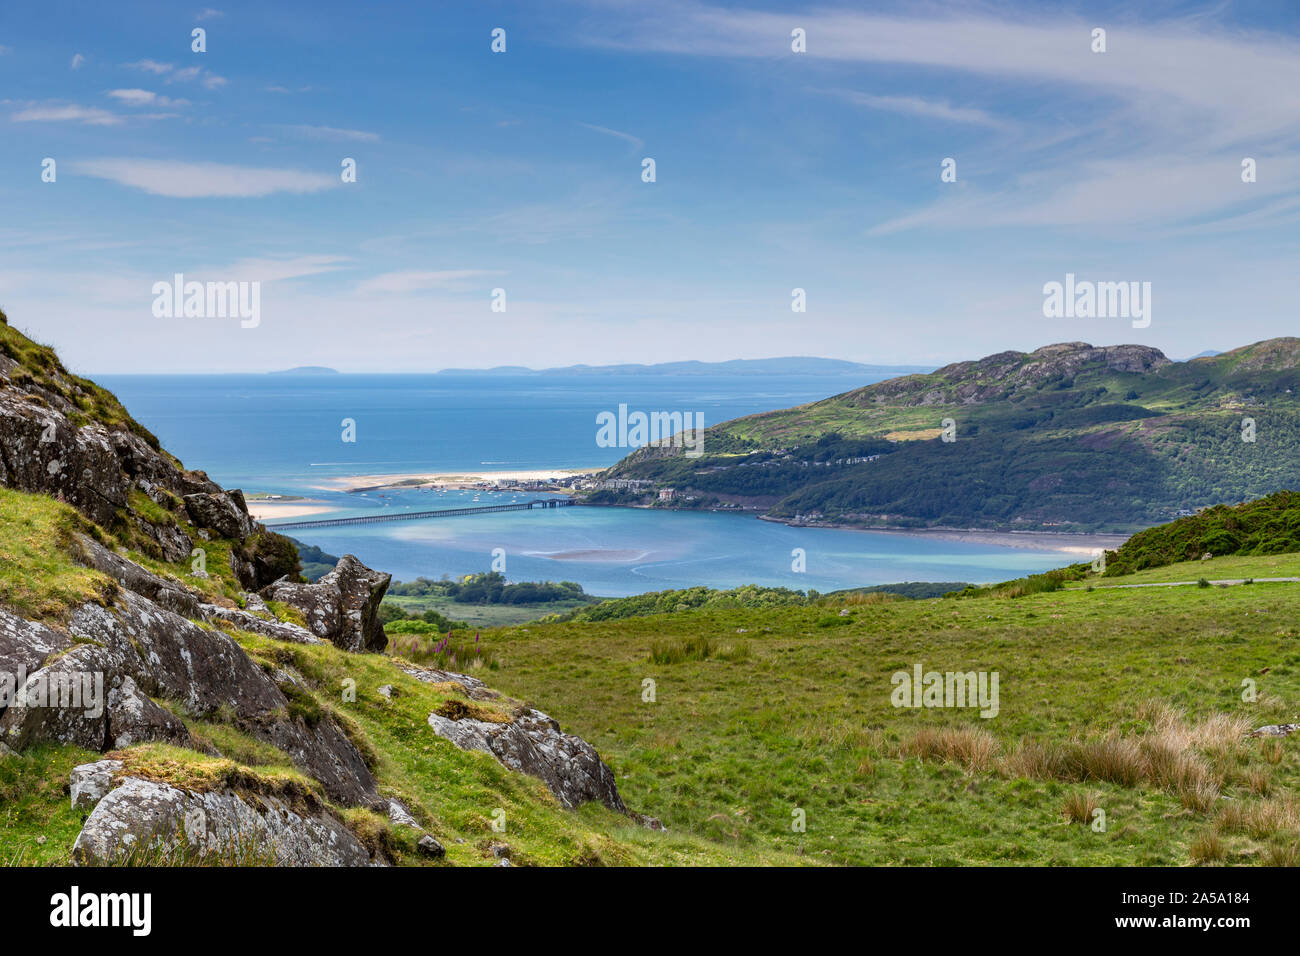 View over Mawddach estuary and Barmouth on the welsh coast Stock Photo